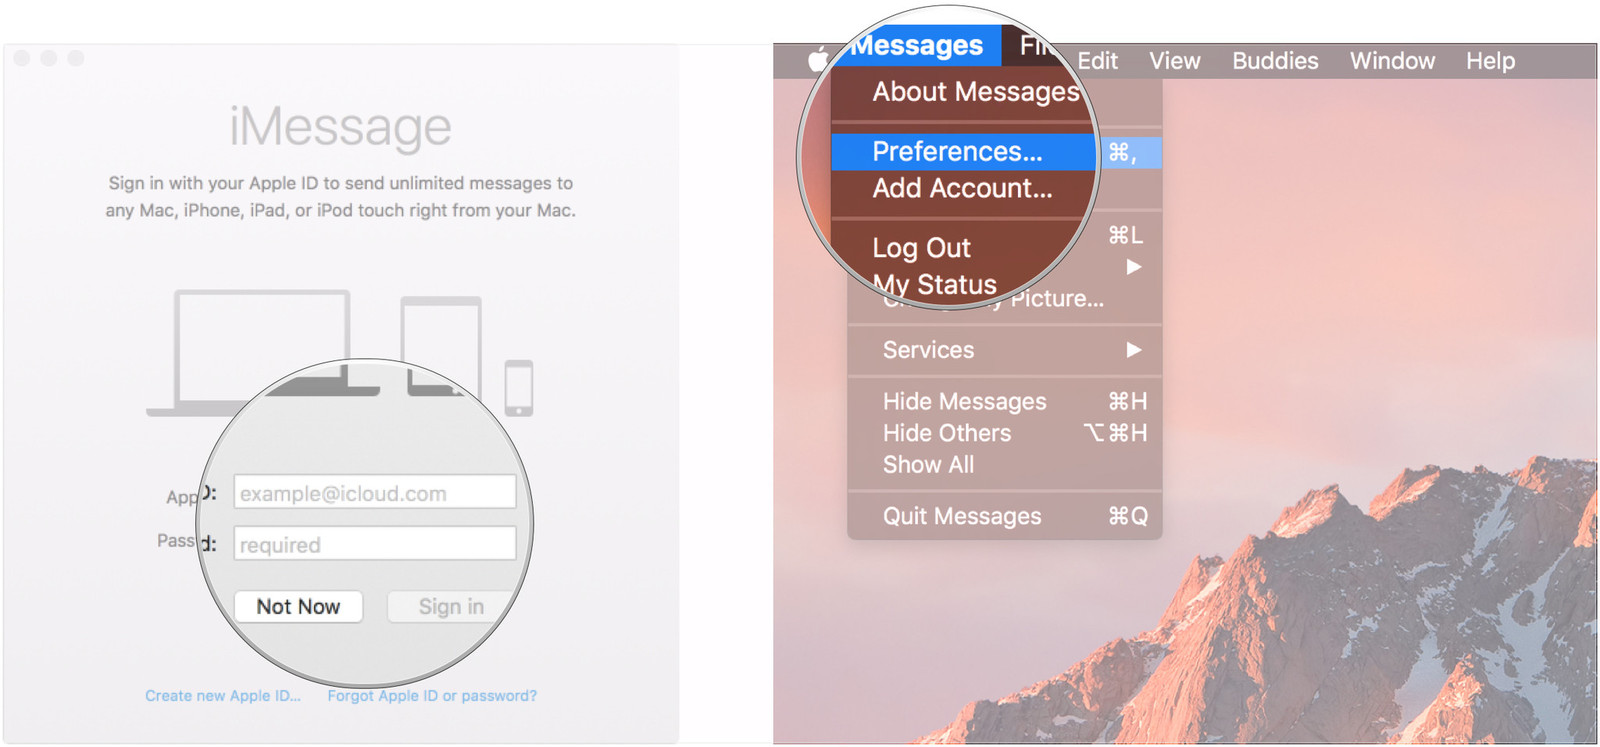 How to set up iMessages on a Mac